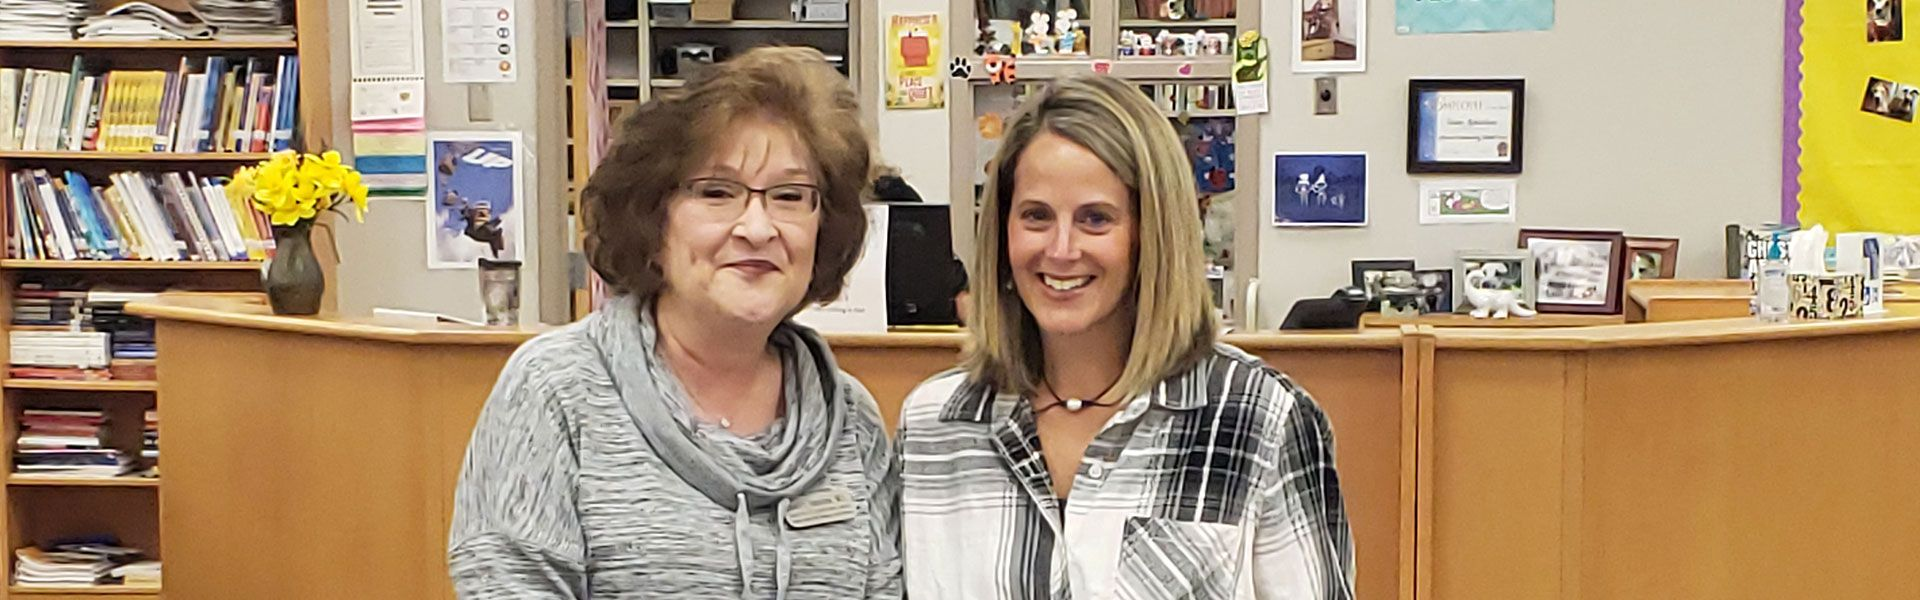 Honoring Mindy Spaulding, Lebanon Middle School Nurse